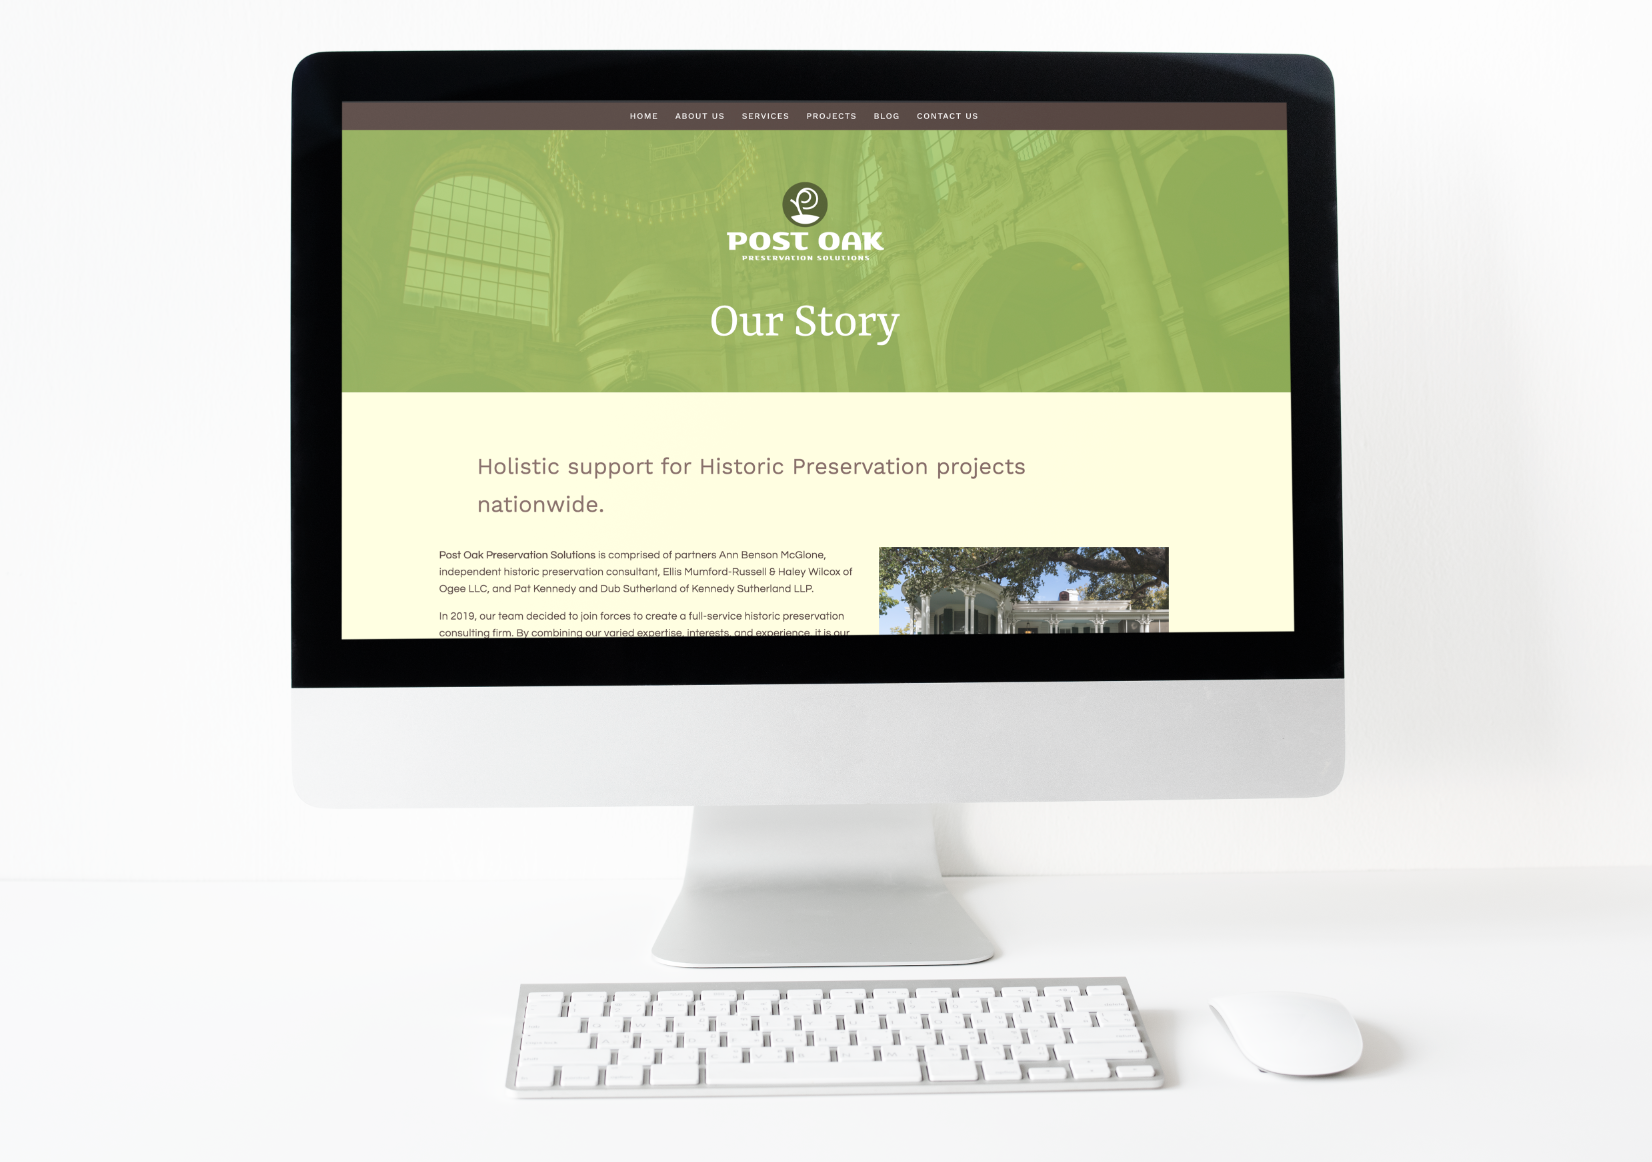 Ready to build a website you can be proud of? - Reach out today.